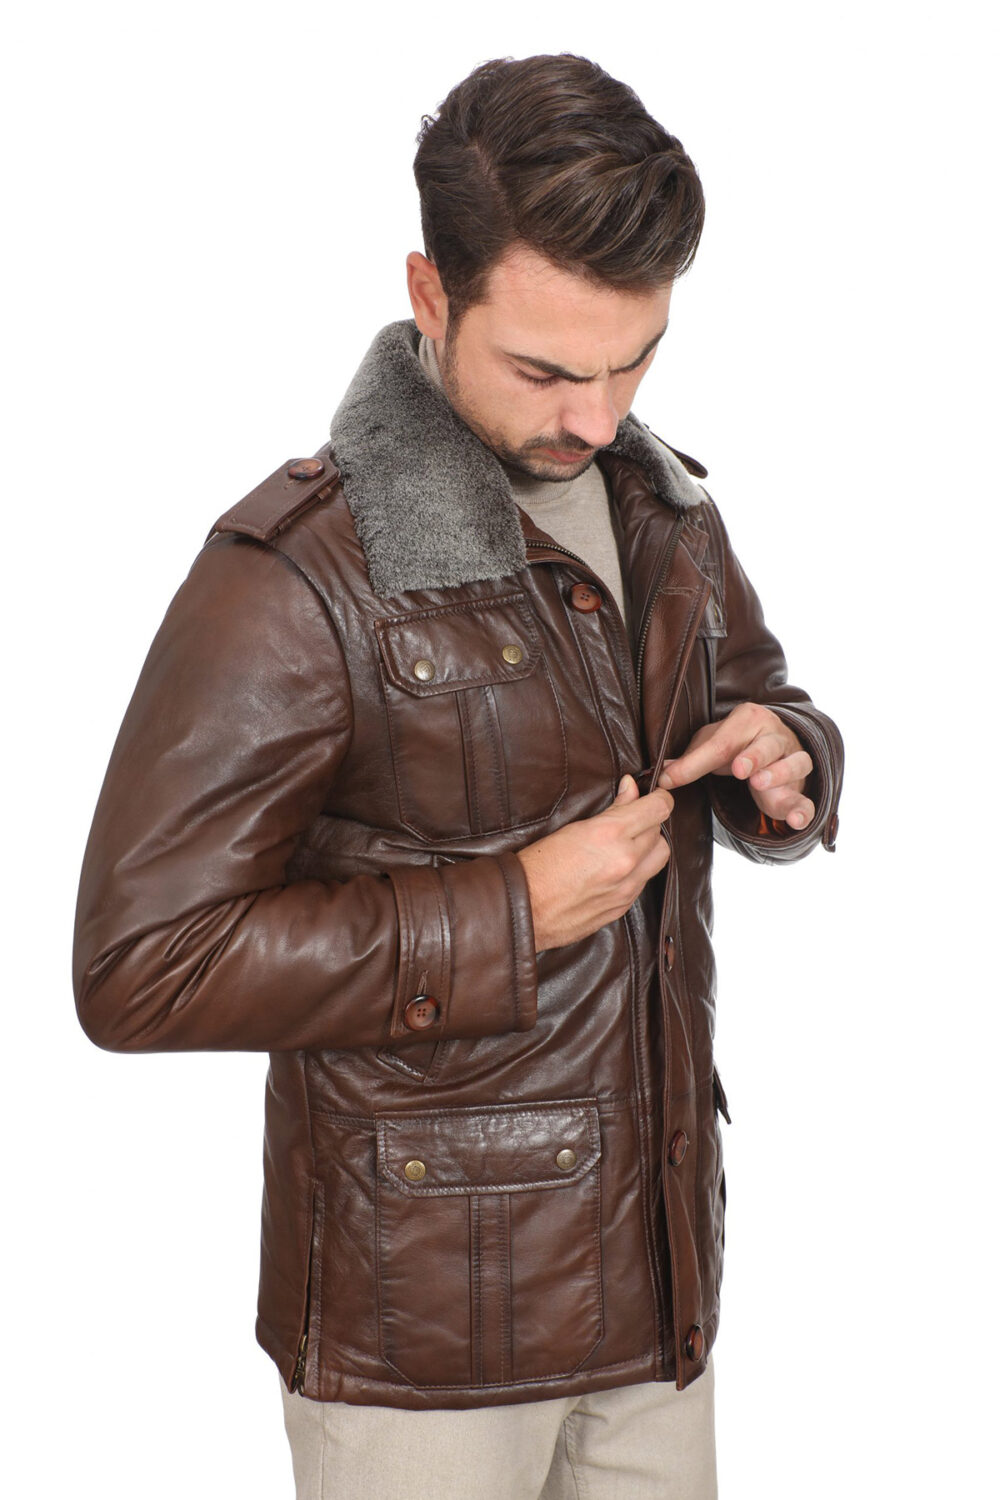 Best Affordable Leather Jackets